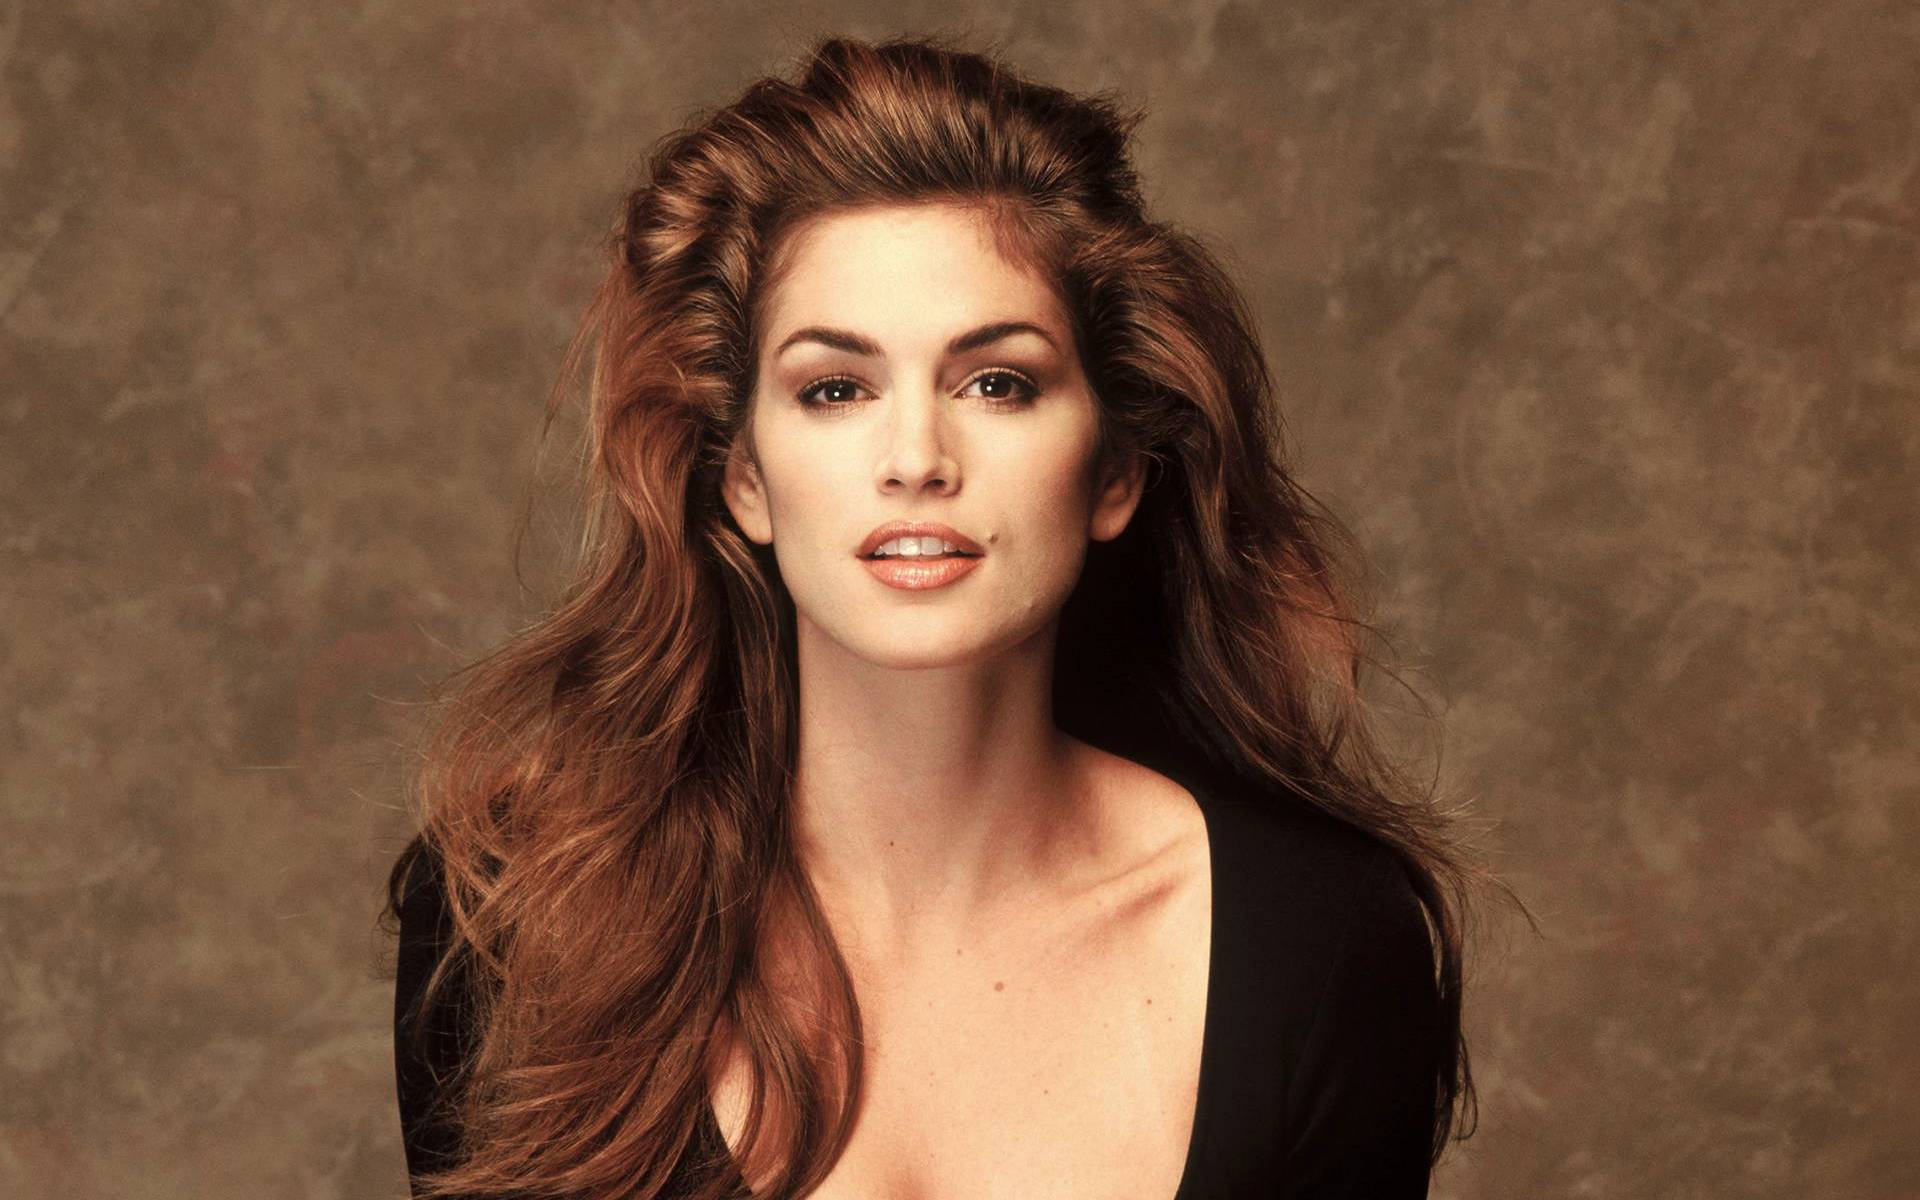 Cindy Crawford Wallpapers Images Photos Pictures Backgrounds 1920x1200